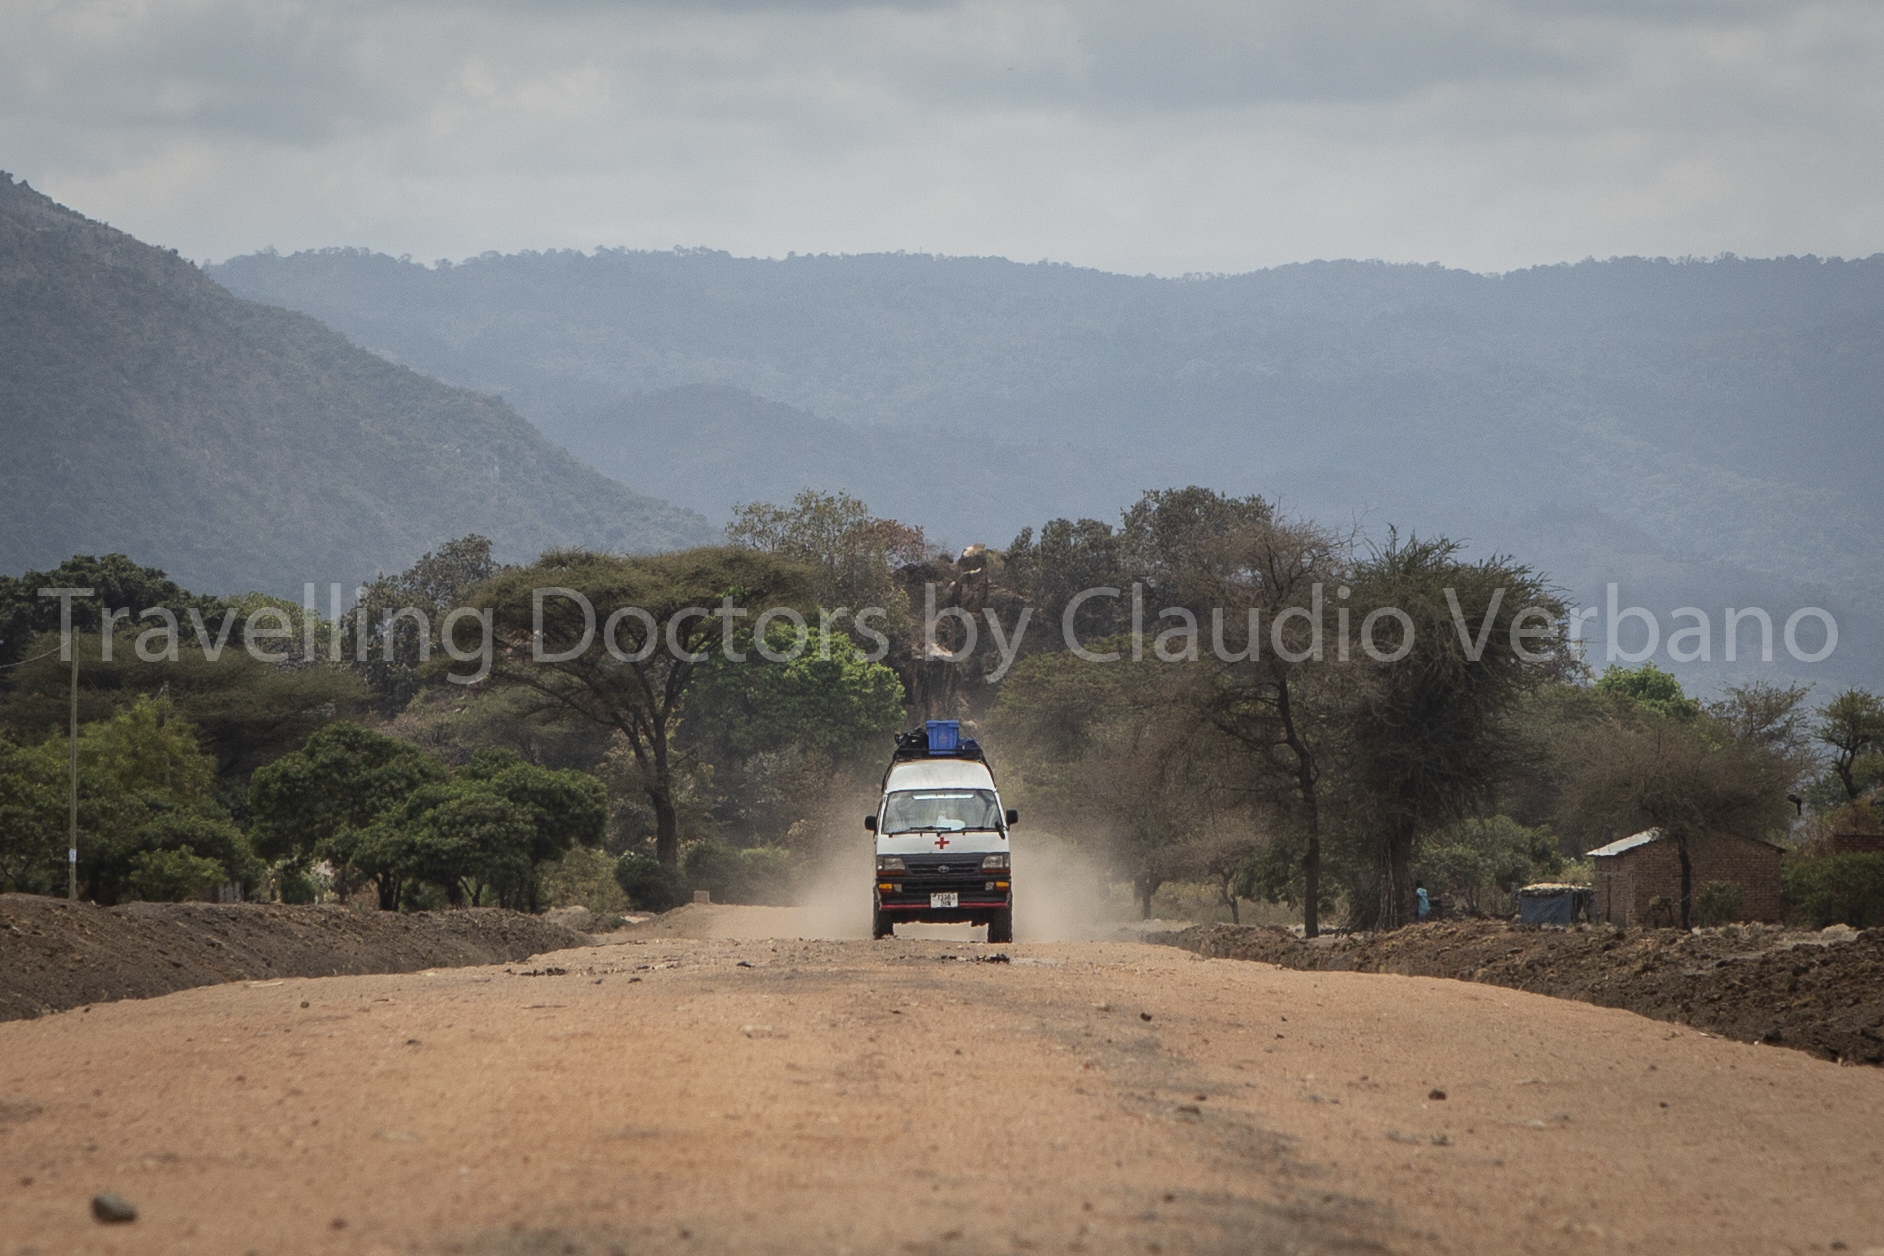 Travelling Doctors Tanzania by Claudio Verbano-13.jpg